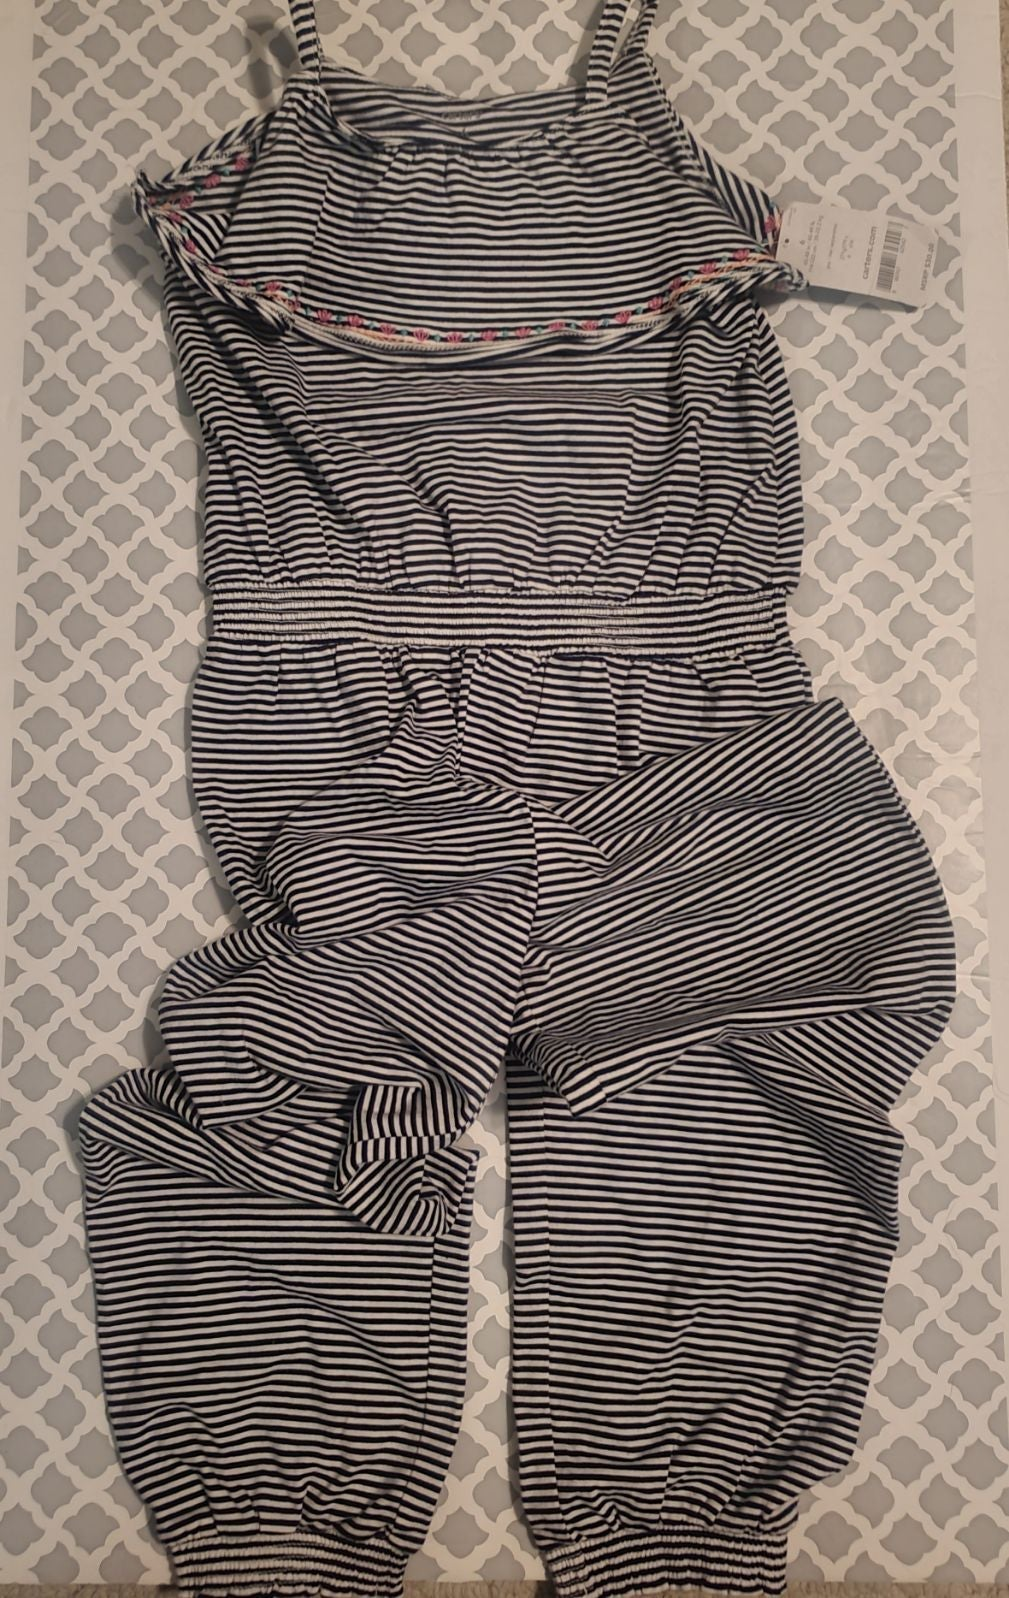 NWT Girls Navy and White Striped Jumper